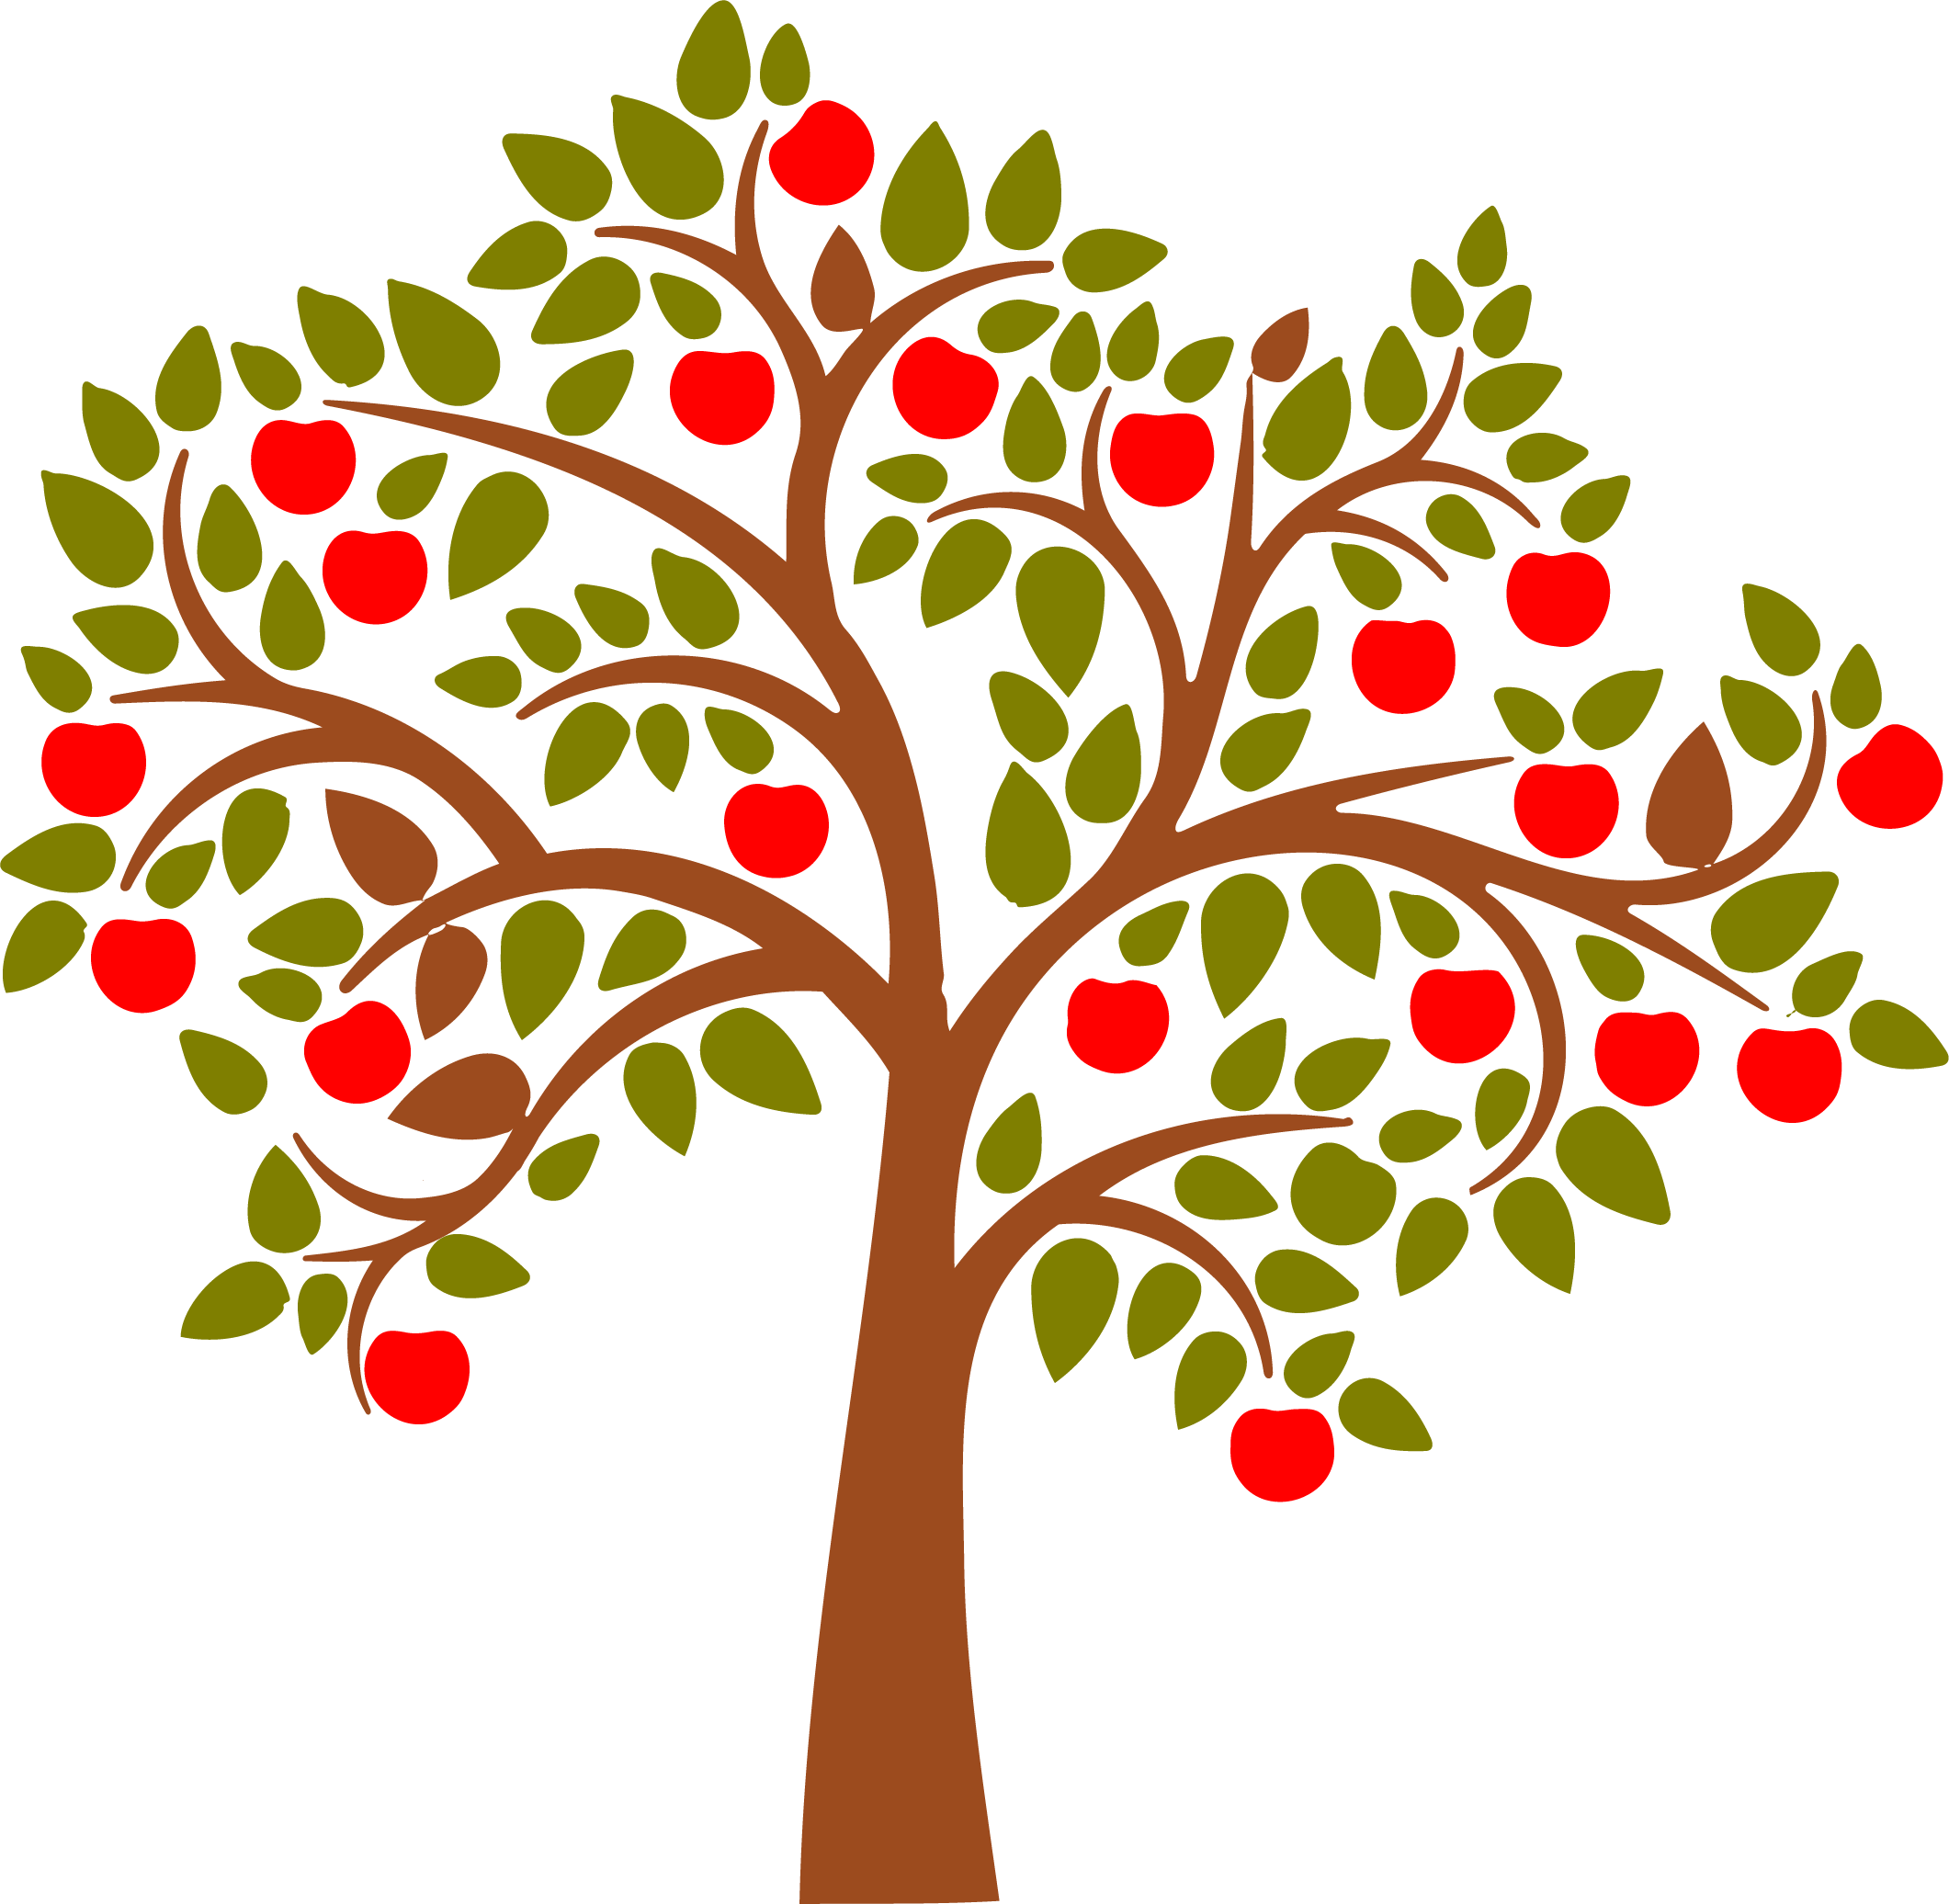 HD Wall Decal Apples.